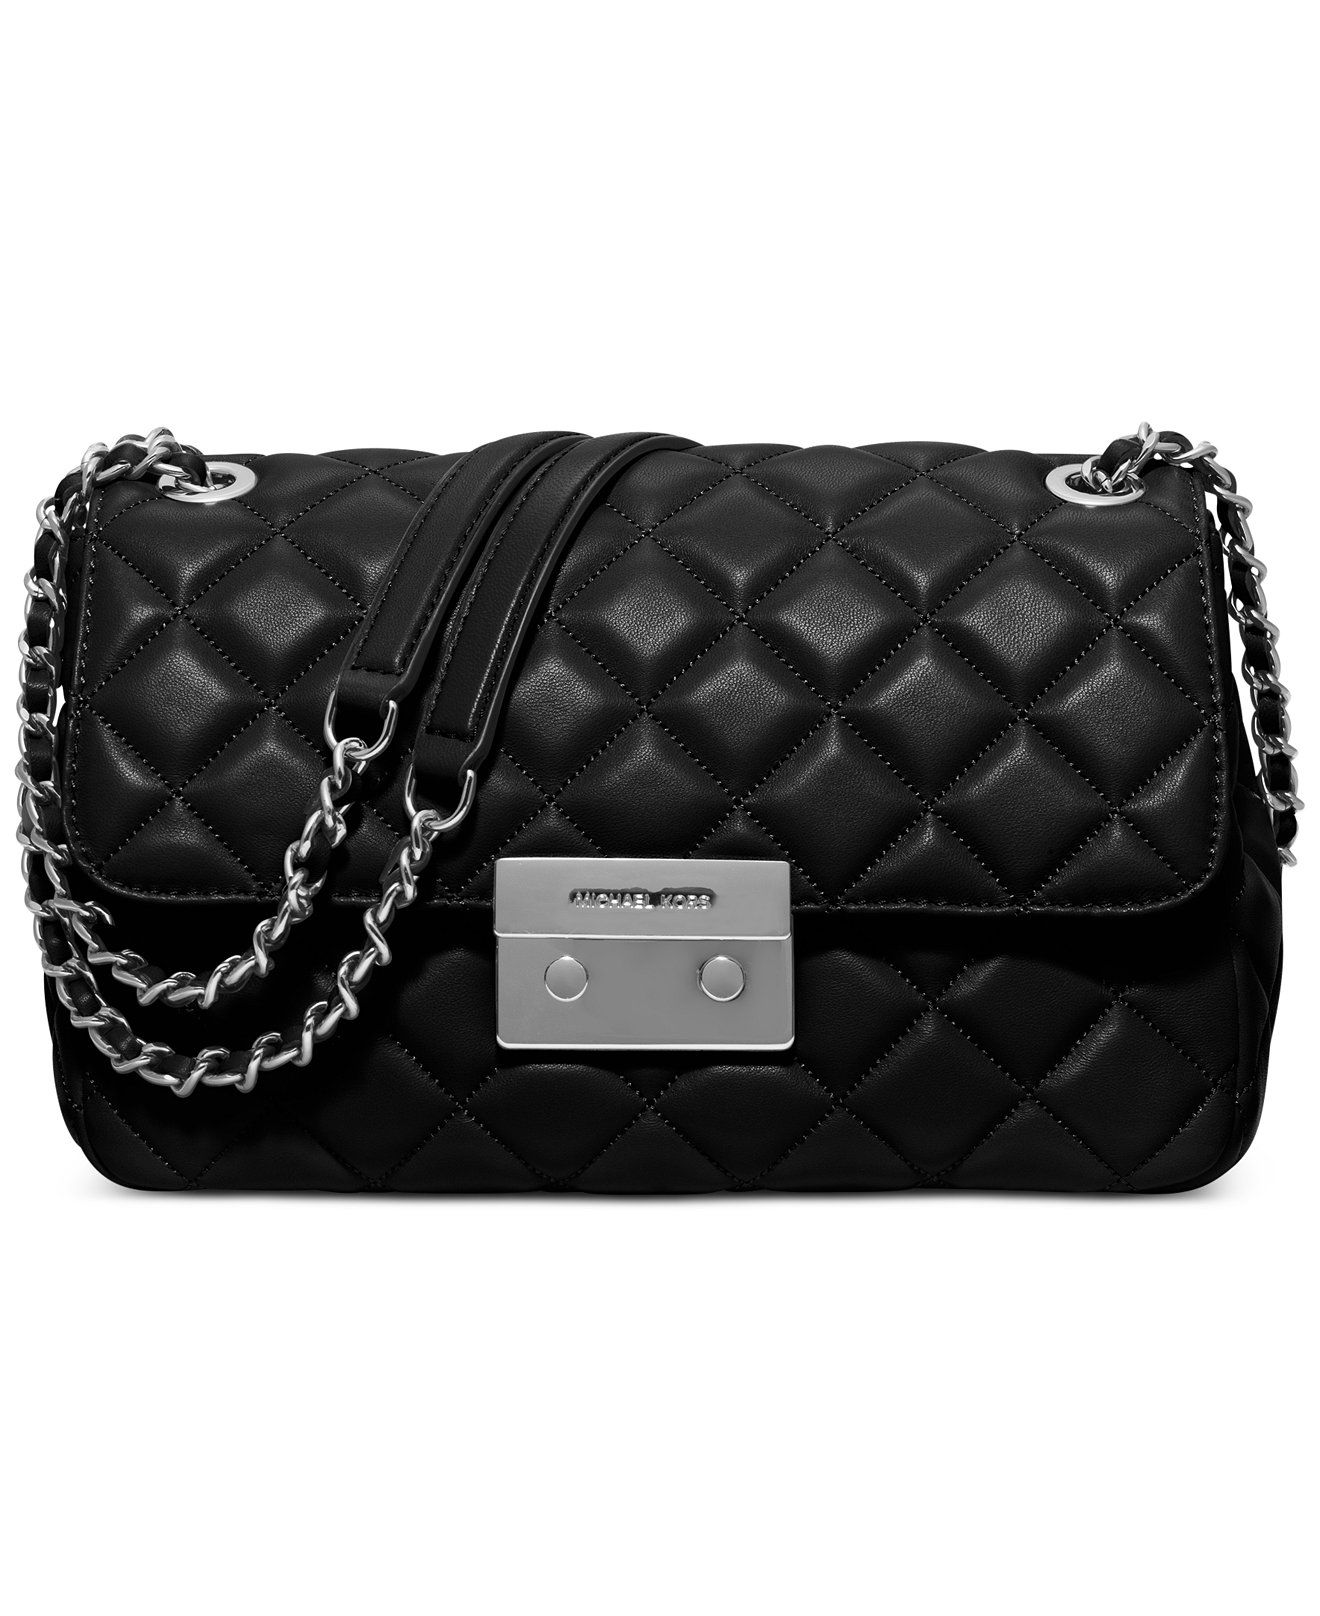 Michael Kors Sloan Large Quilted Shoulder Flap Black Costa Lamb Leather Handbag Chain Strap Designer Fashion